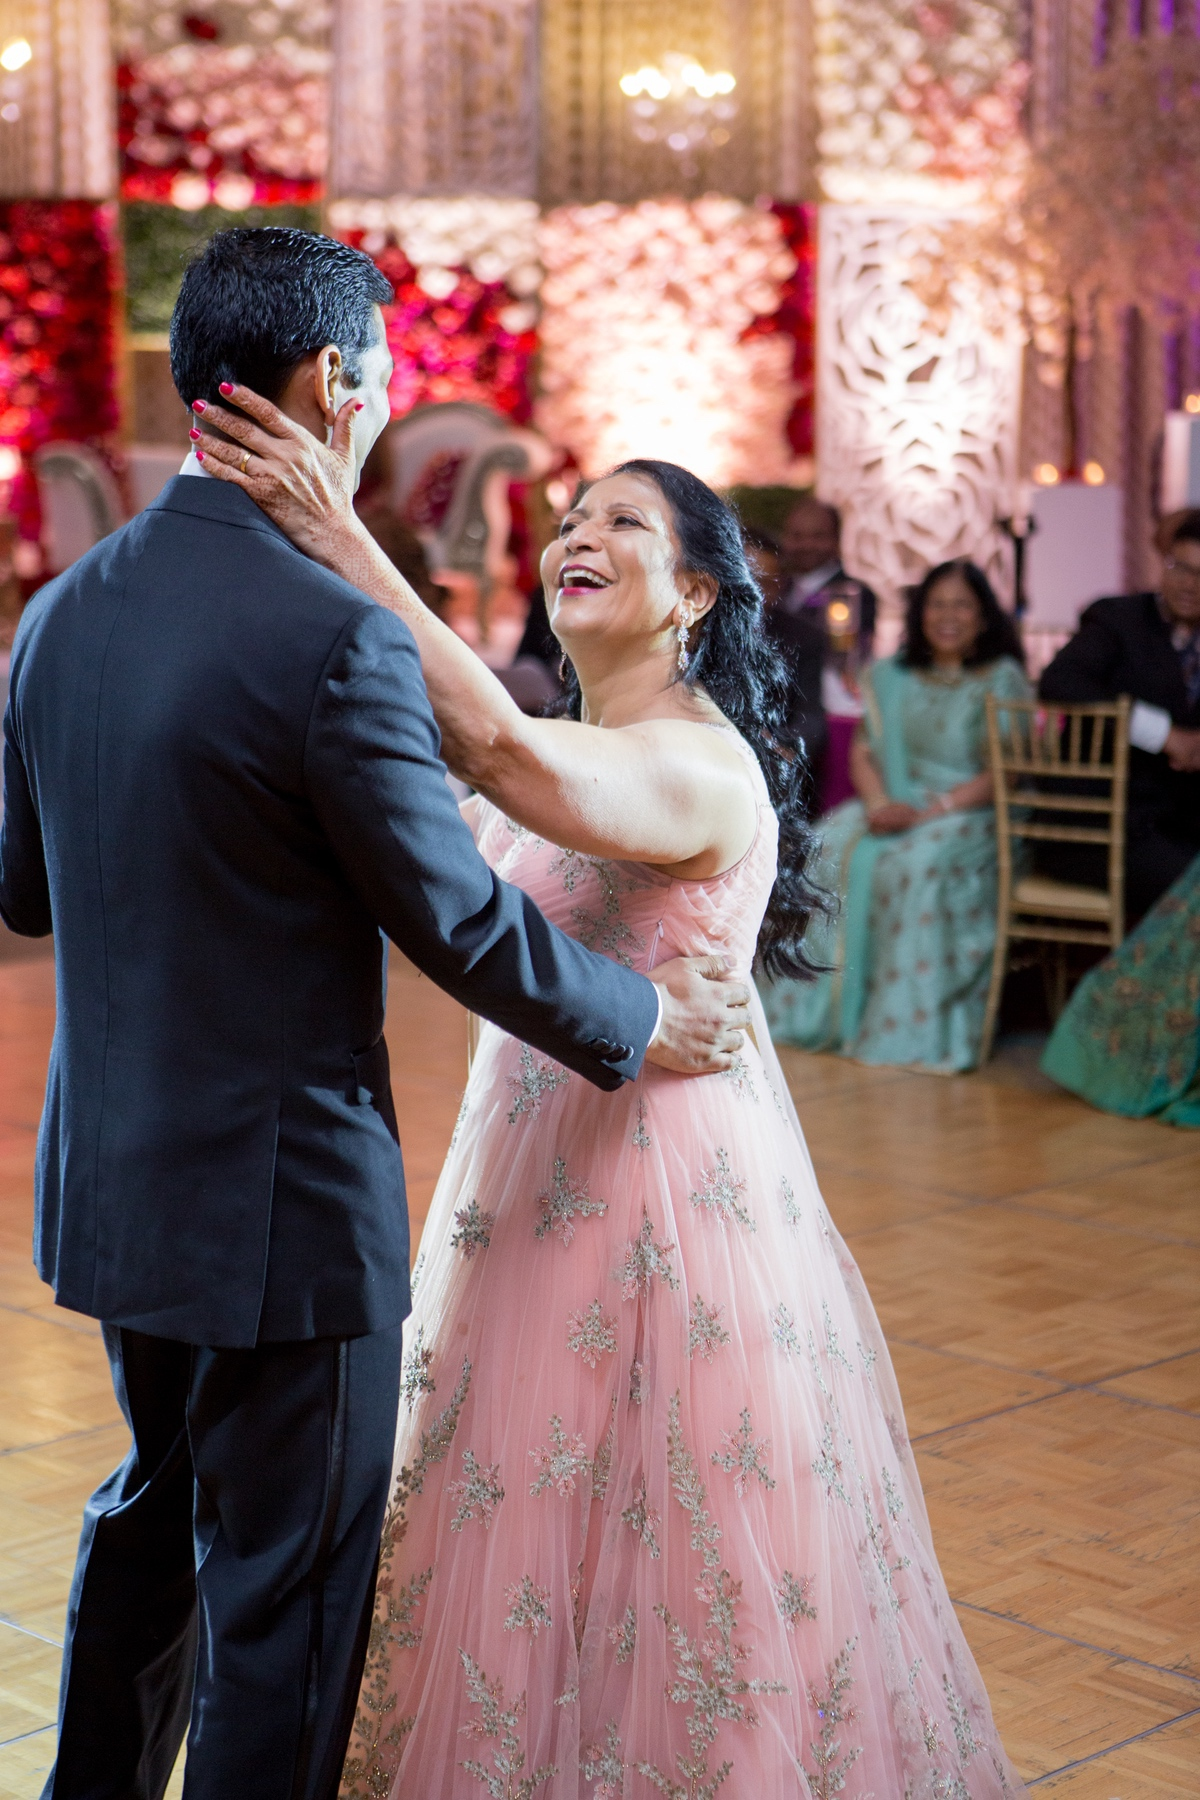 Le Cape Weddings - South Asian Wedding - Chicago Wedding Photographer P&V-76-2.jpg